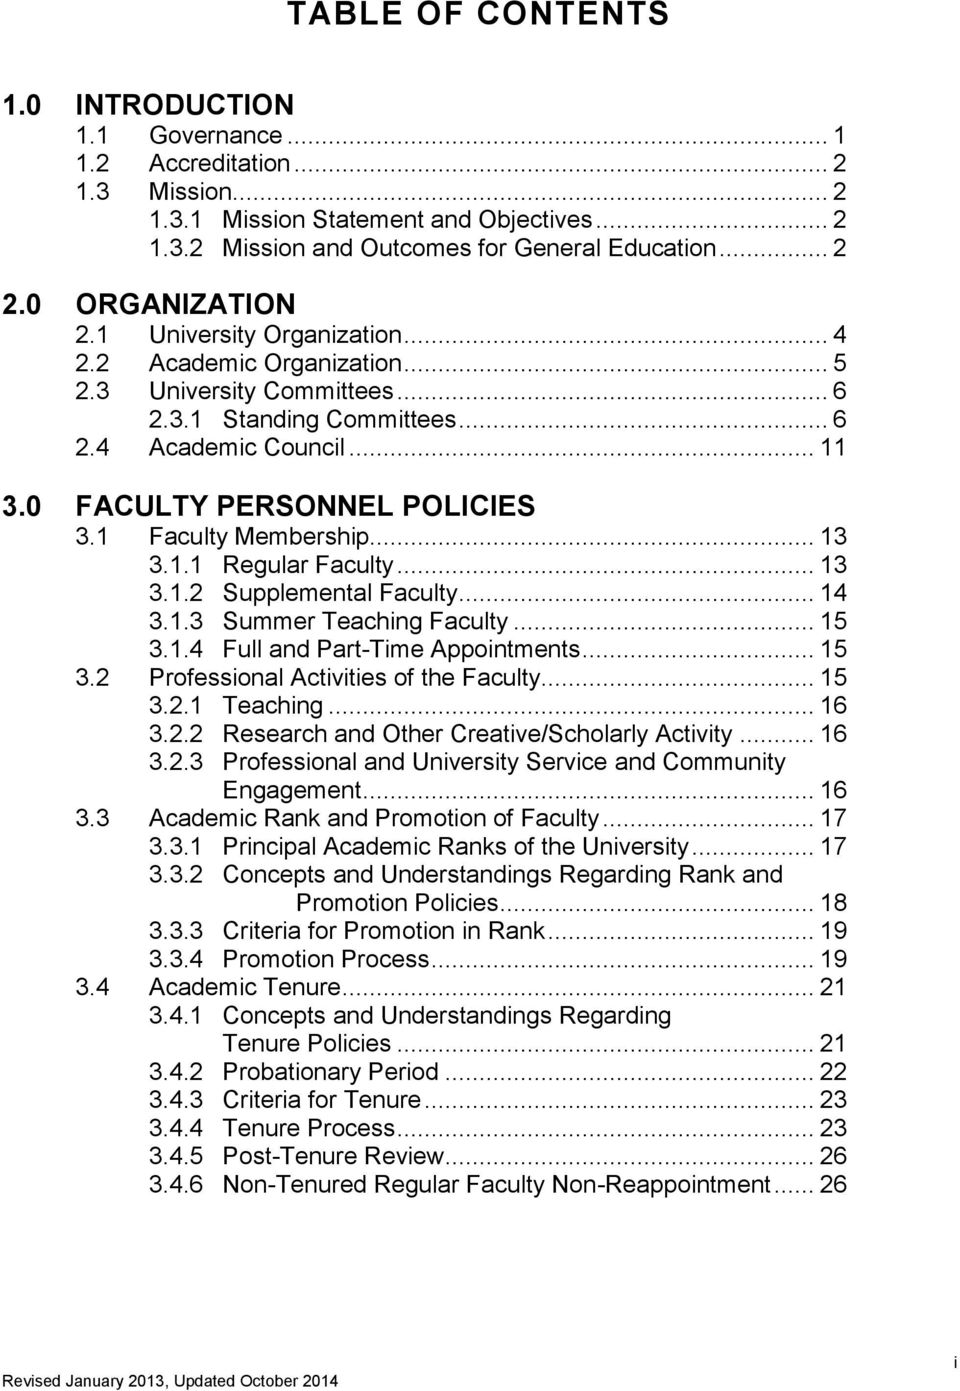 0 FACULTY PERSONNEL POLICIES 3.1 Faculty Membership... 13 3.1.1 Regular Faculty... 13 3.1.2 Supplemental Faculty... 14 3.1.3 Summer Teaching Faculty... 15 3.1.4 Full and Part-Time Appointments... 15 3.2 Professional Activities of the Faculty.